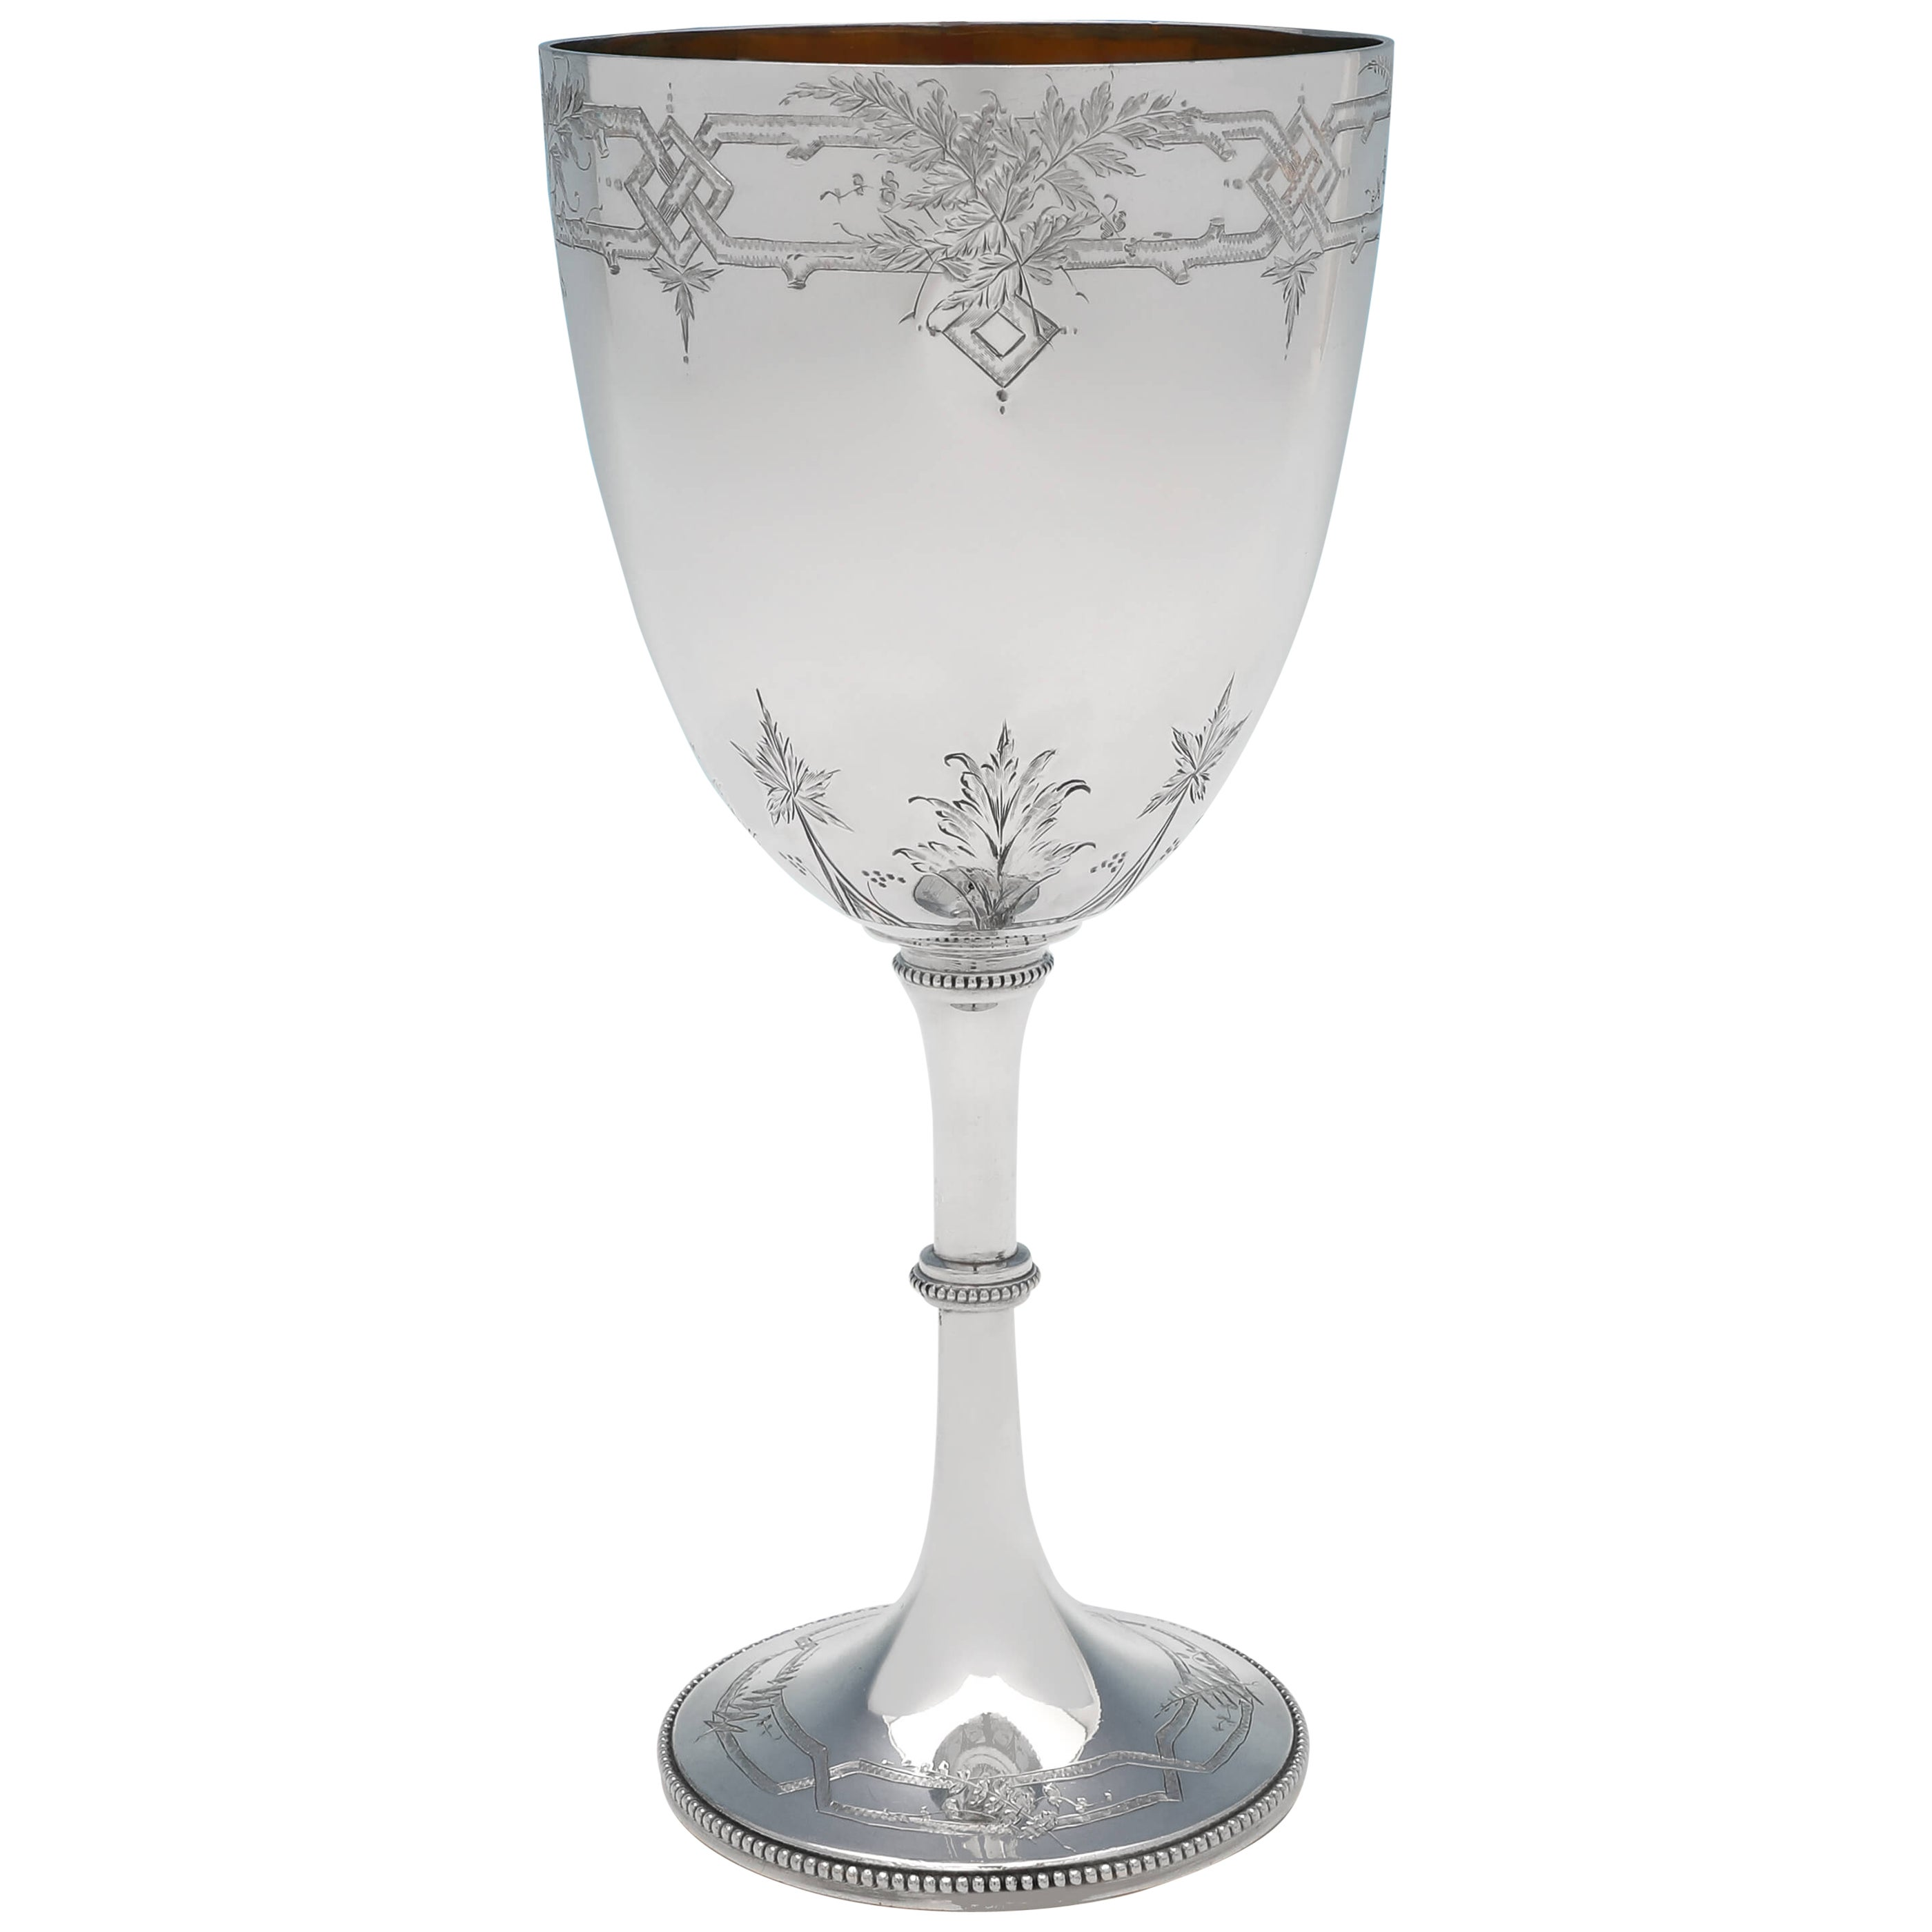 Antique Victorian Sterling Silver Goblet, Naturalistic Engraving, Made in 1876